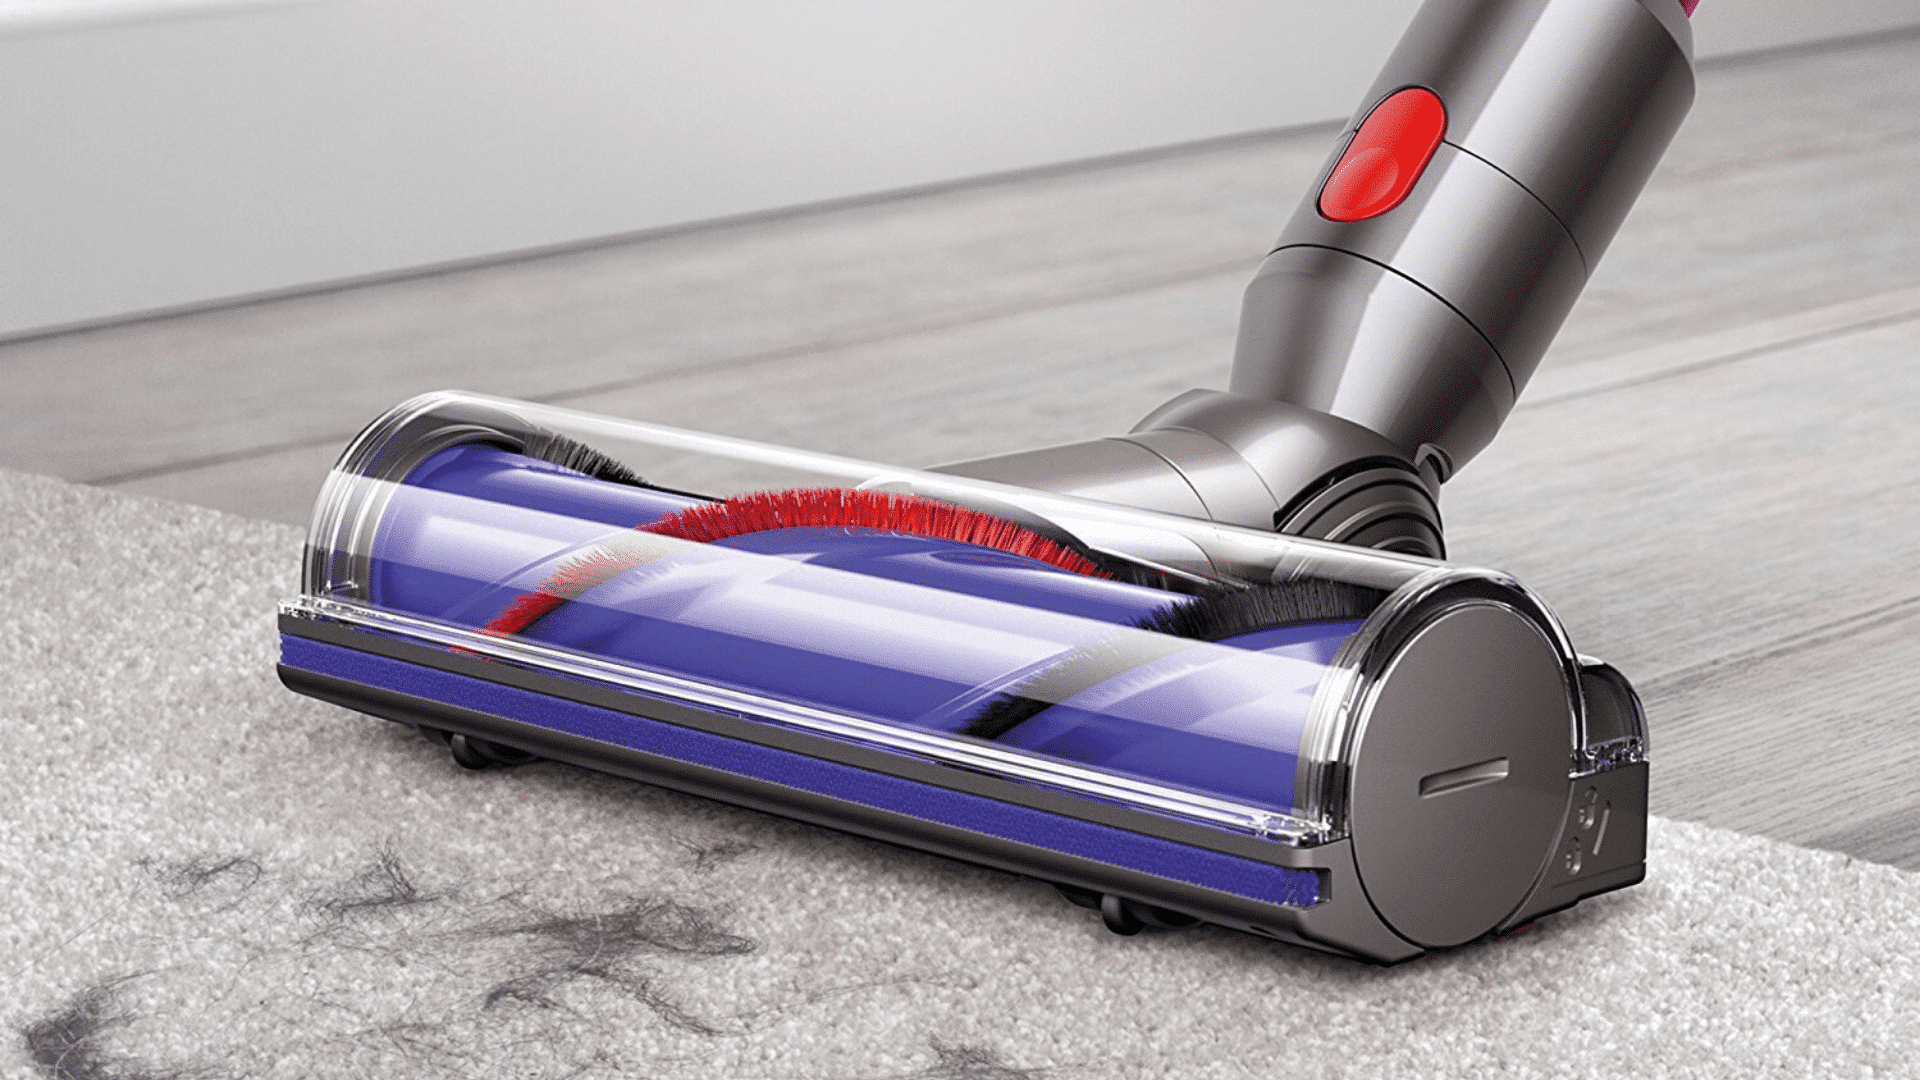 image of Dyson V7 Motorhead Cordless Vacuum Cleaner being used to clean carpet